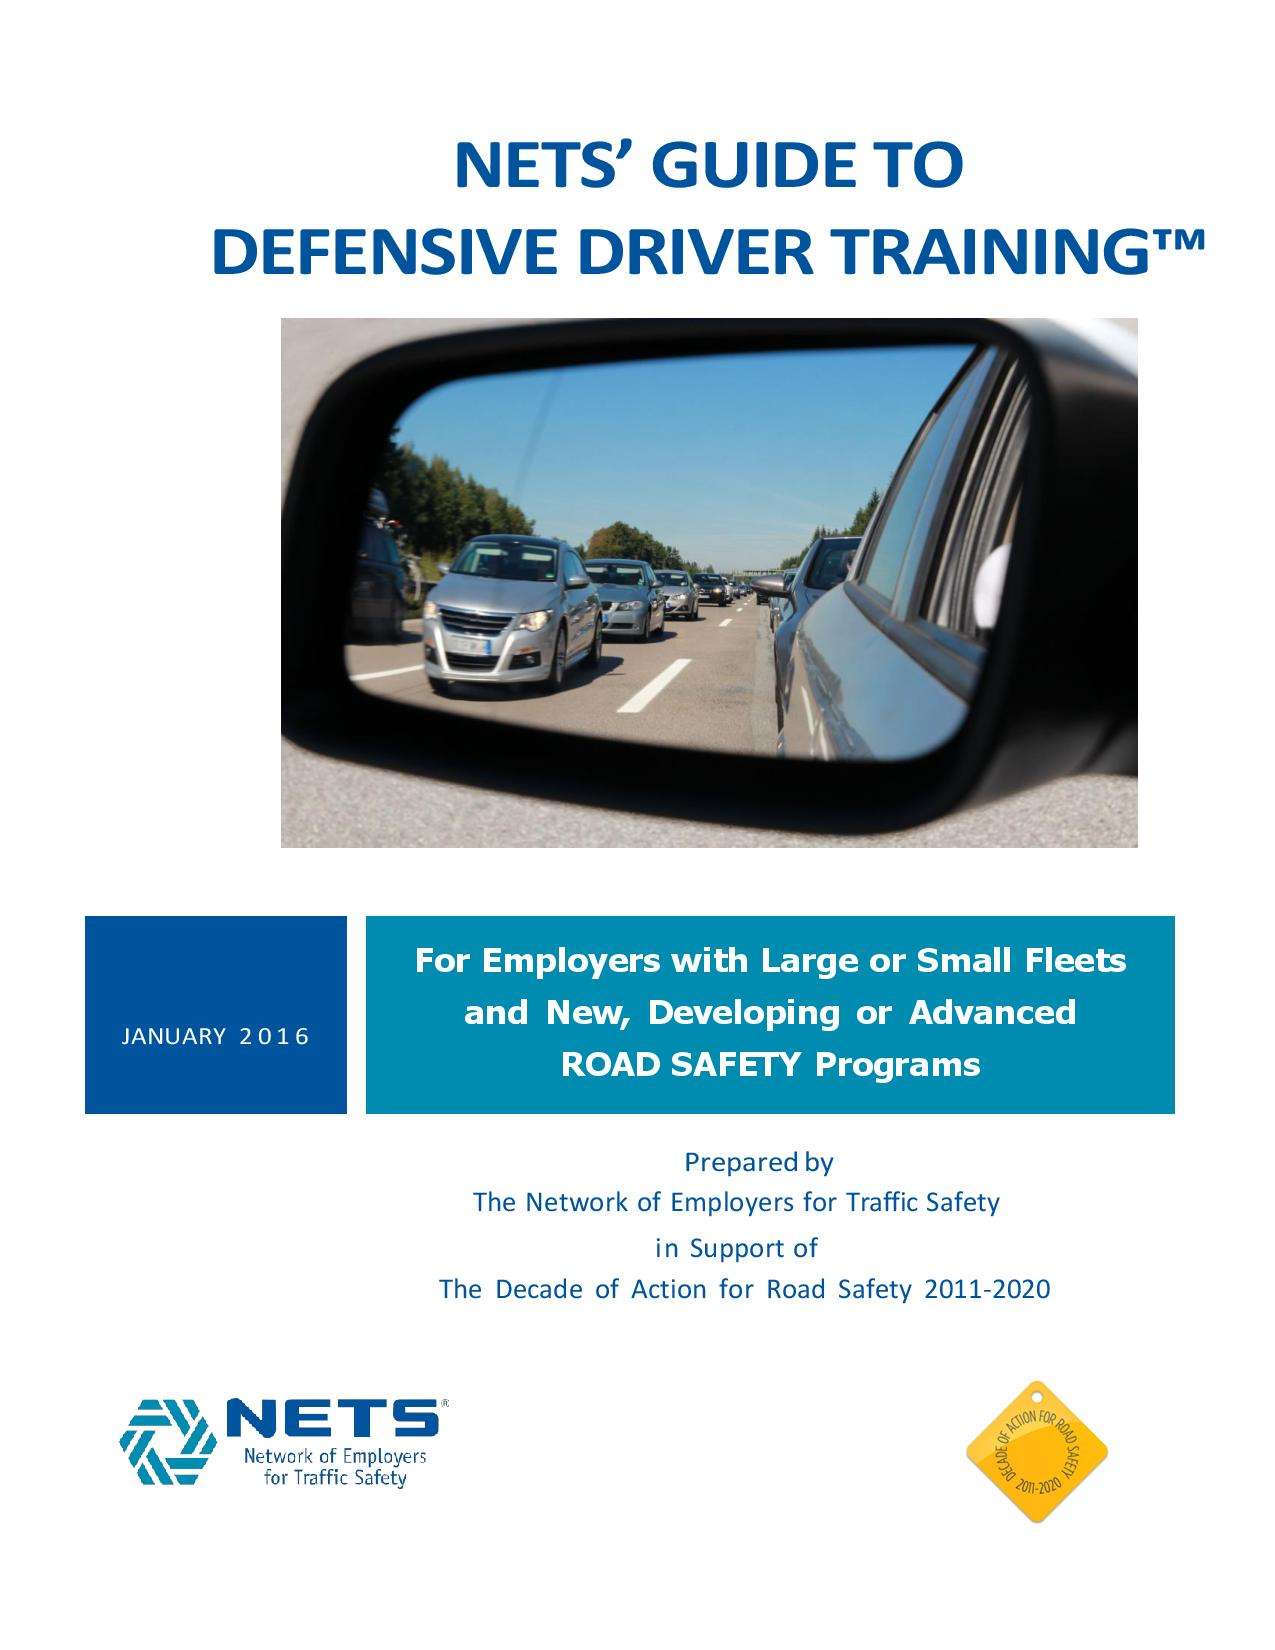 NETS' Guide to Defensive Driver Training